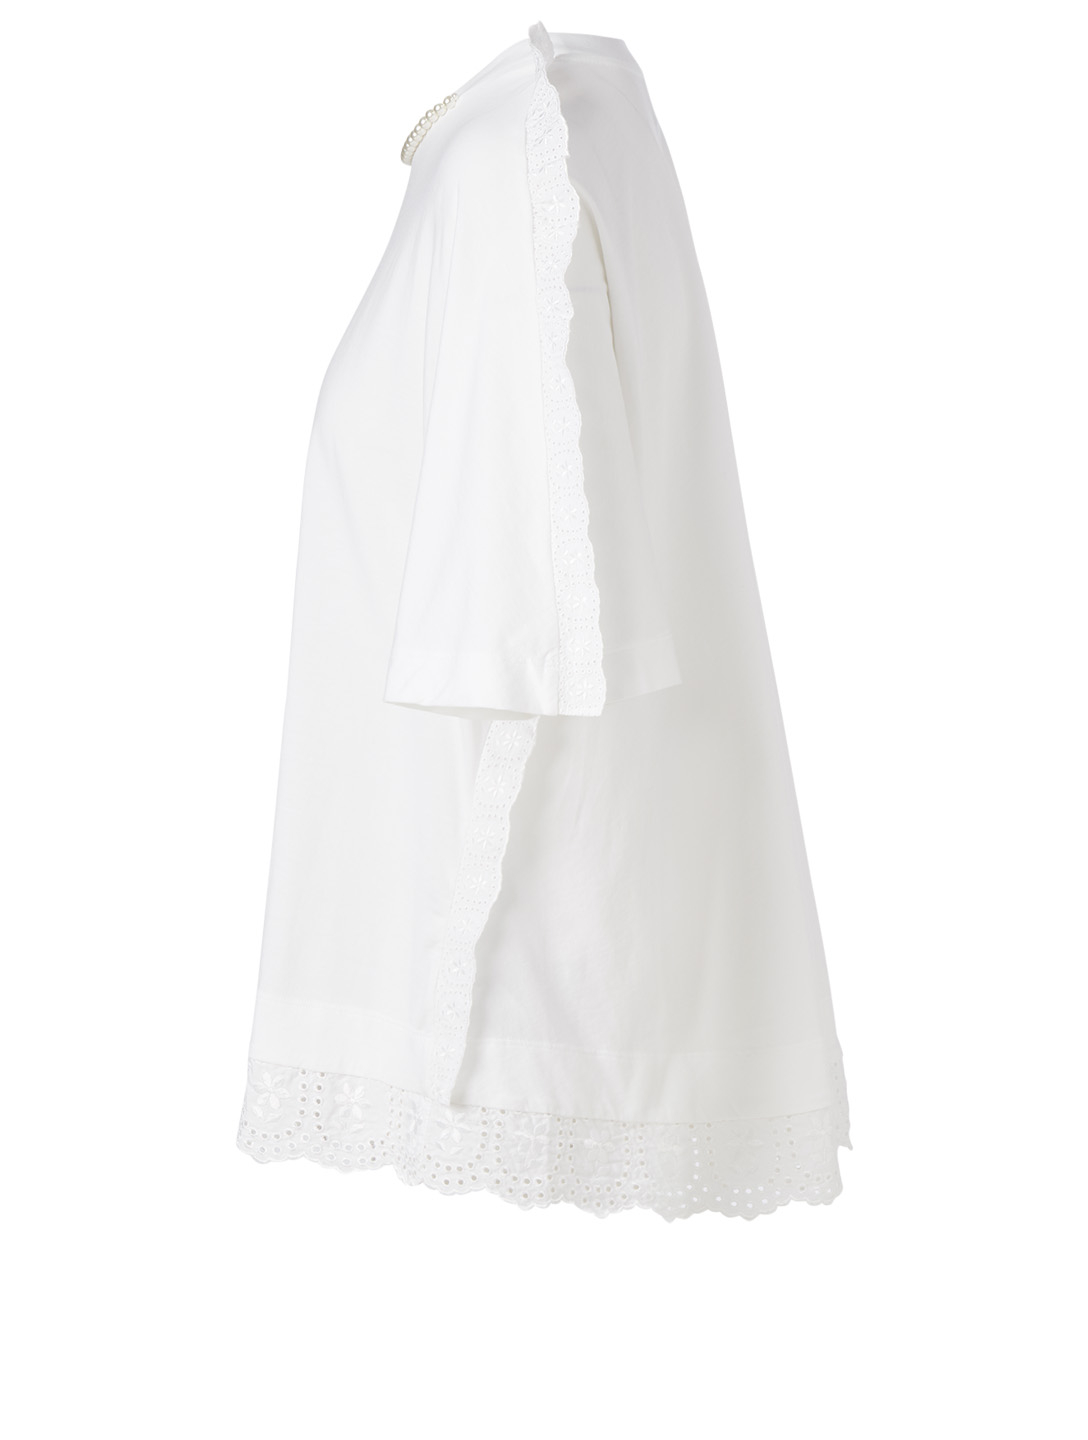 SIMONE ROCHA T-Shirt With Tulle Trim Women's White